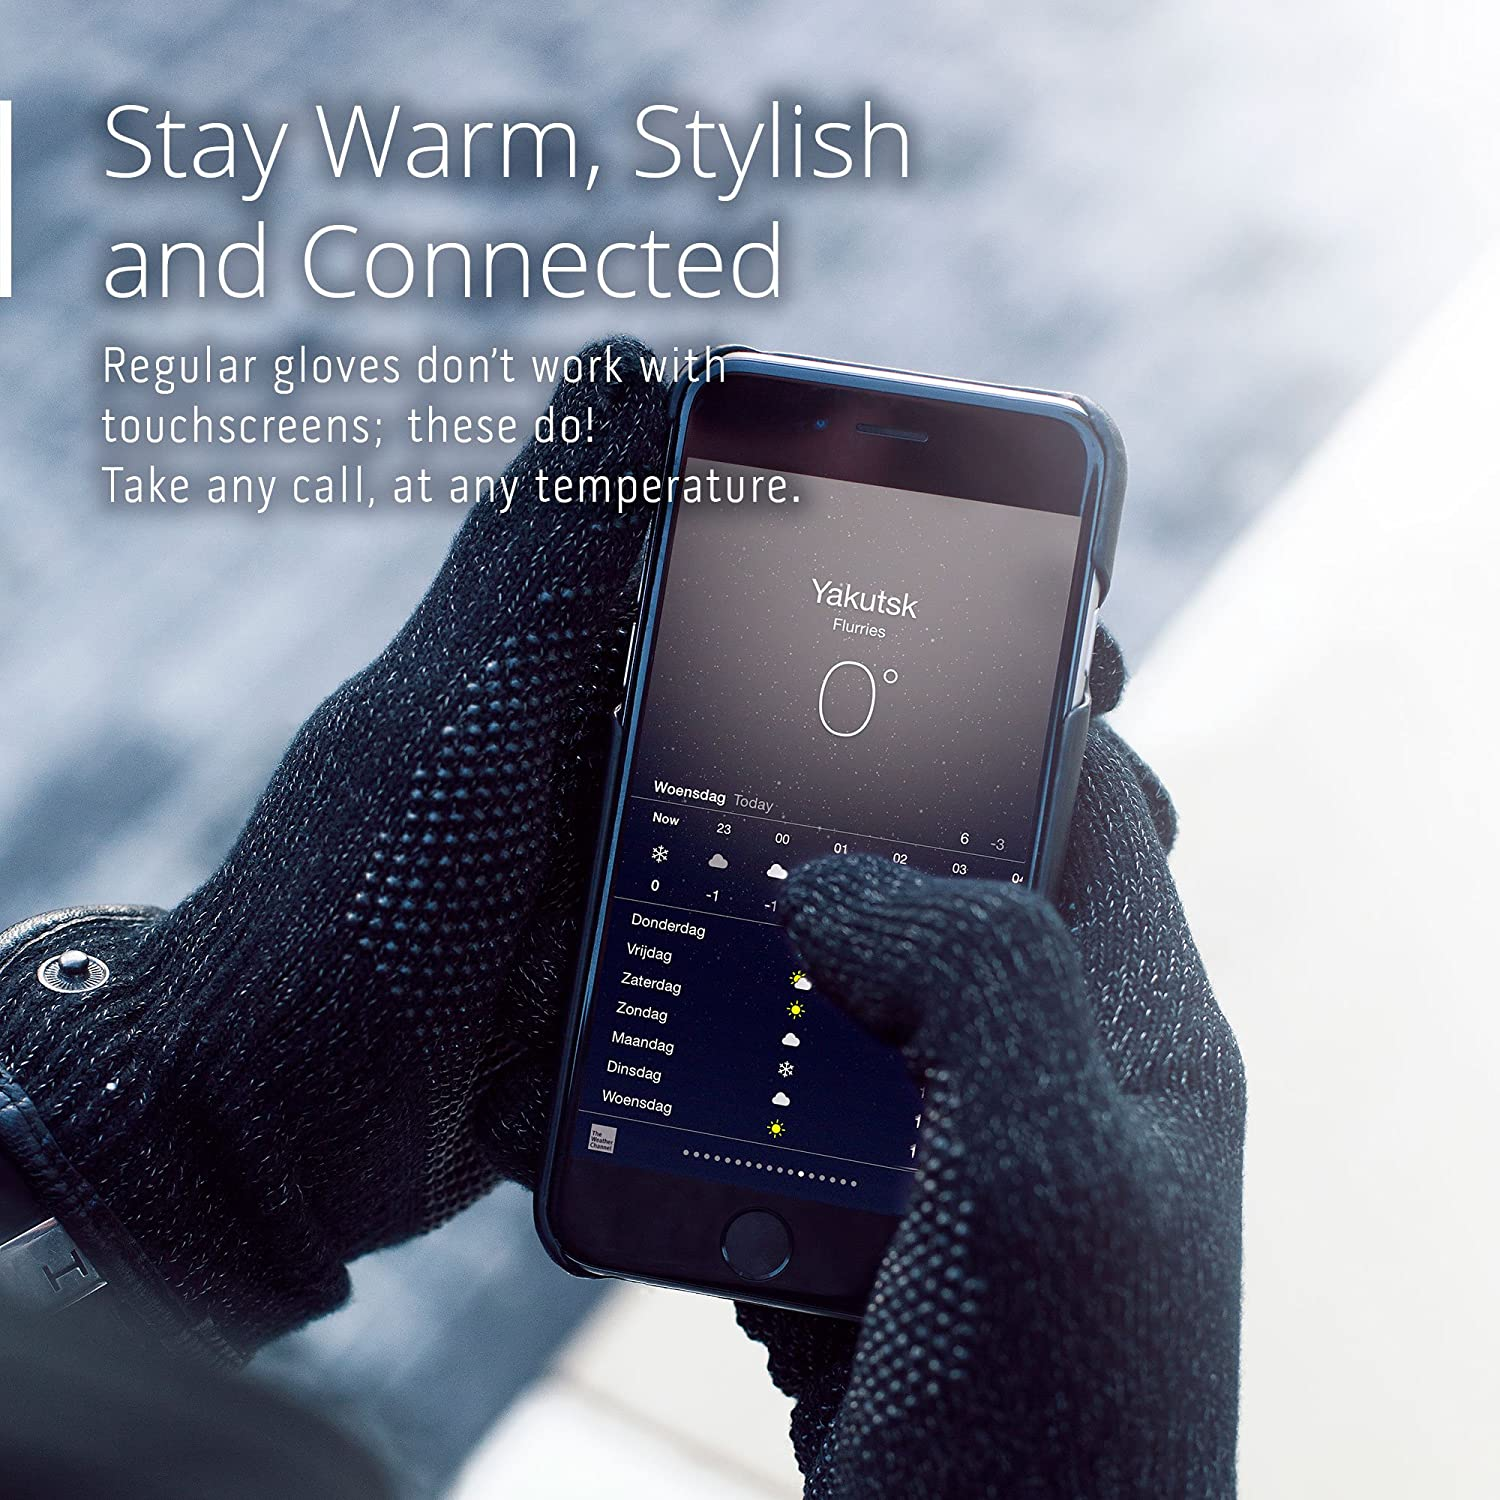 Mujjo Single or Double Layered Touchscreen Winter Gloves Anti-Slip Grip All-Hand /& Finger Smartphone Texting Magnetic Snap Closure Leather Cuffs